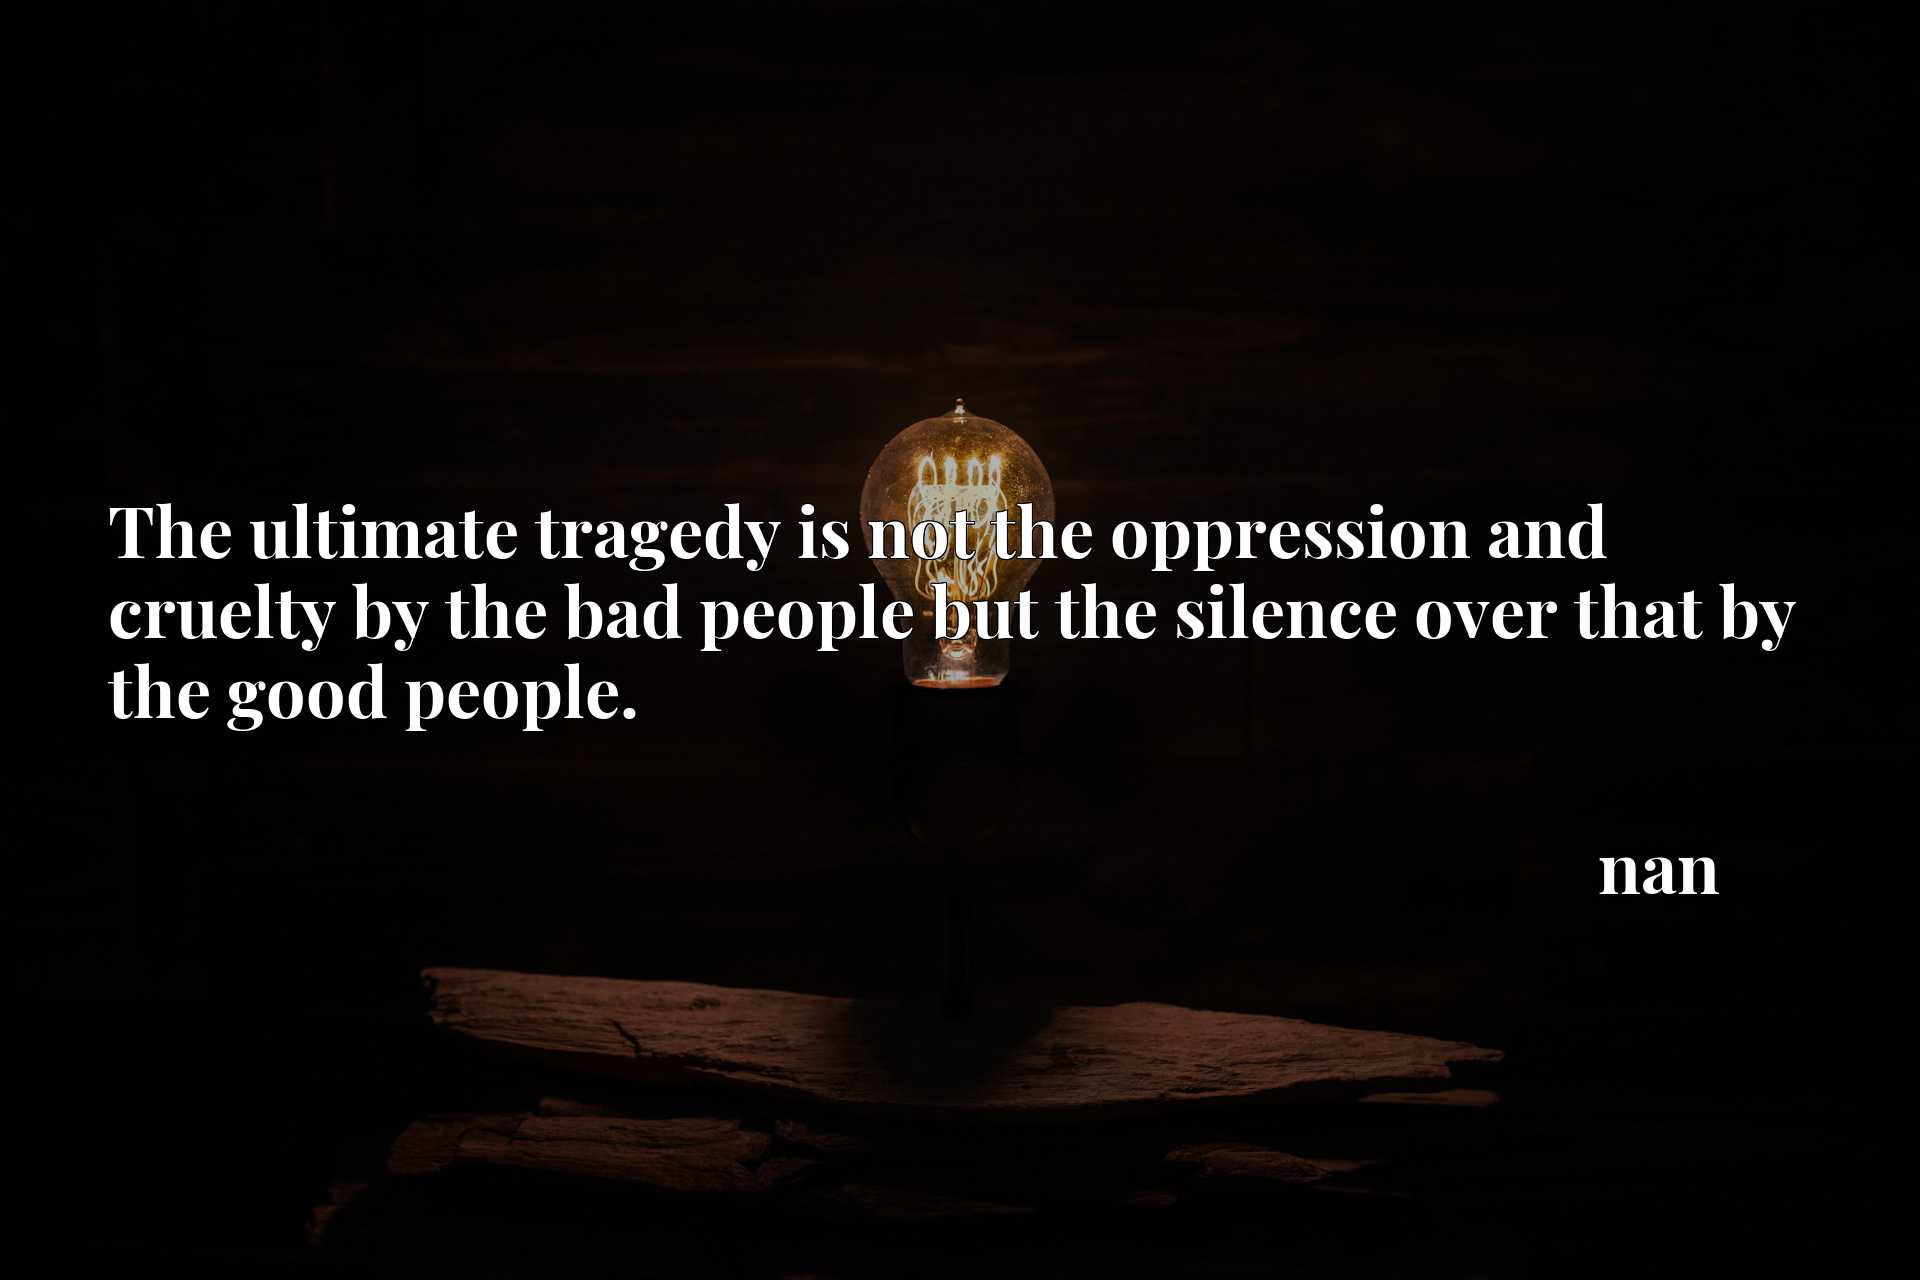 The ultimate tragedy is not the oppression and cruelty by the bad people but the silence over that by the good people.